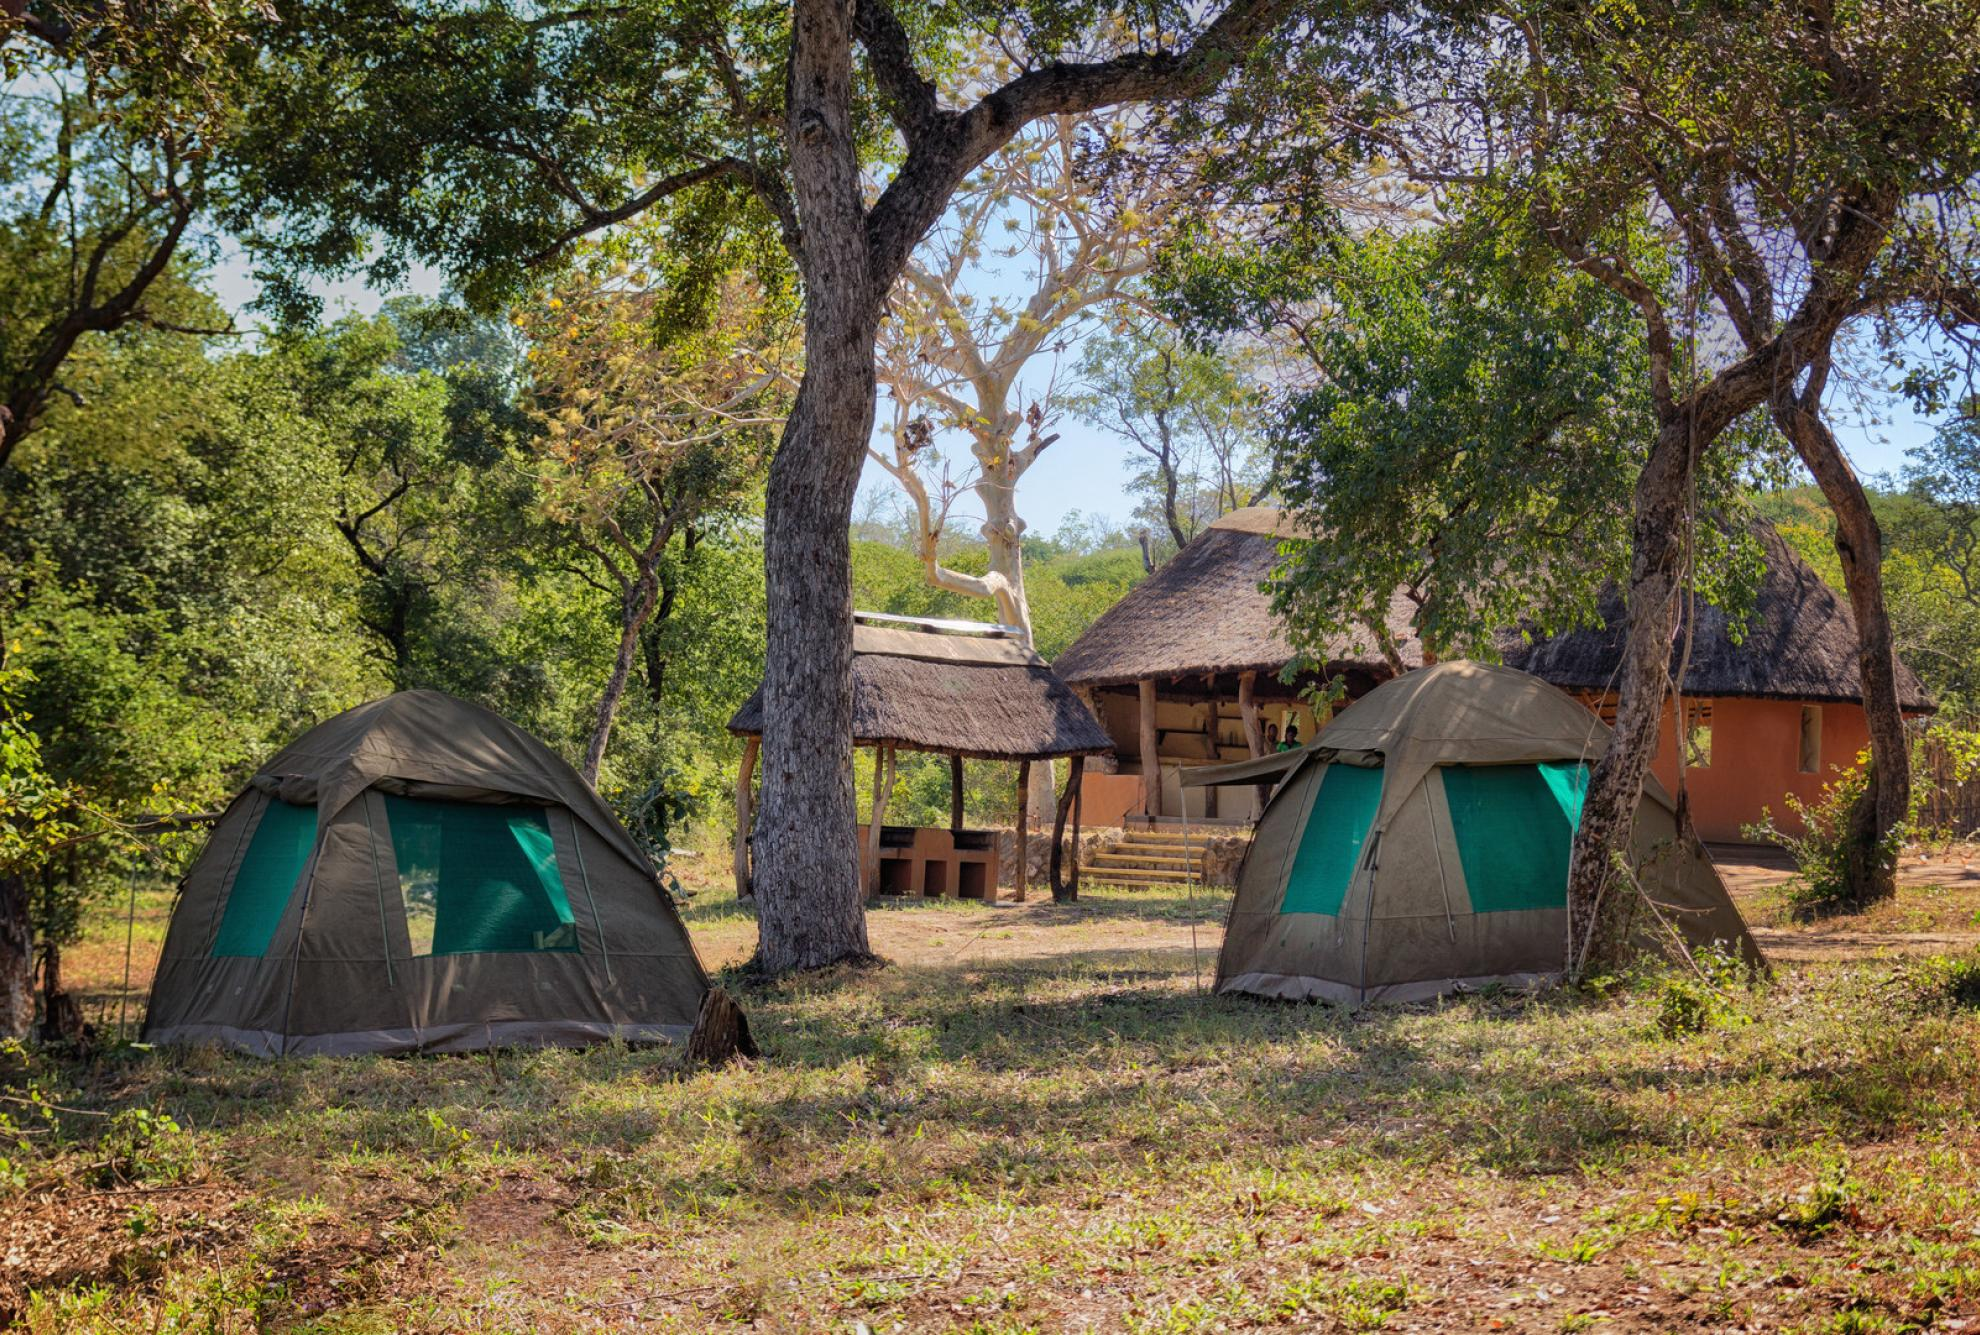 5 of 8 ... & Community Campsite | African Parks